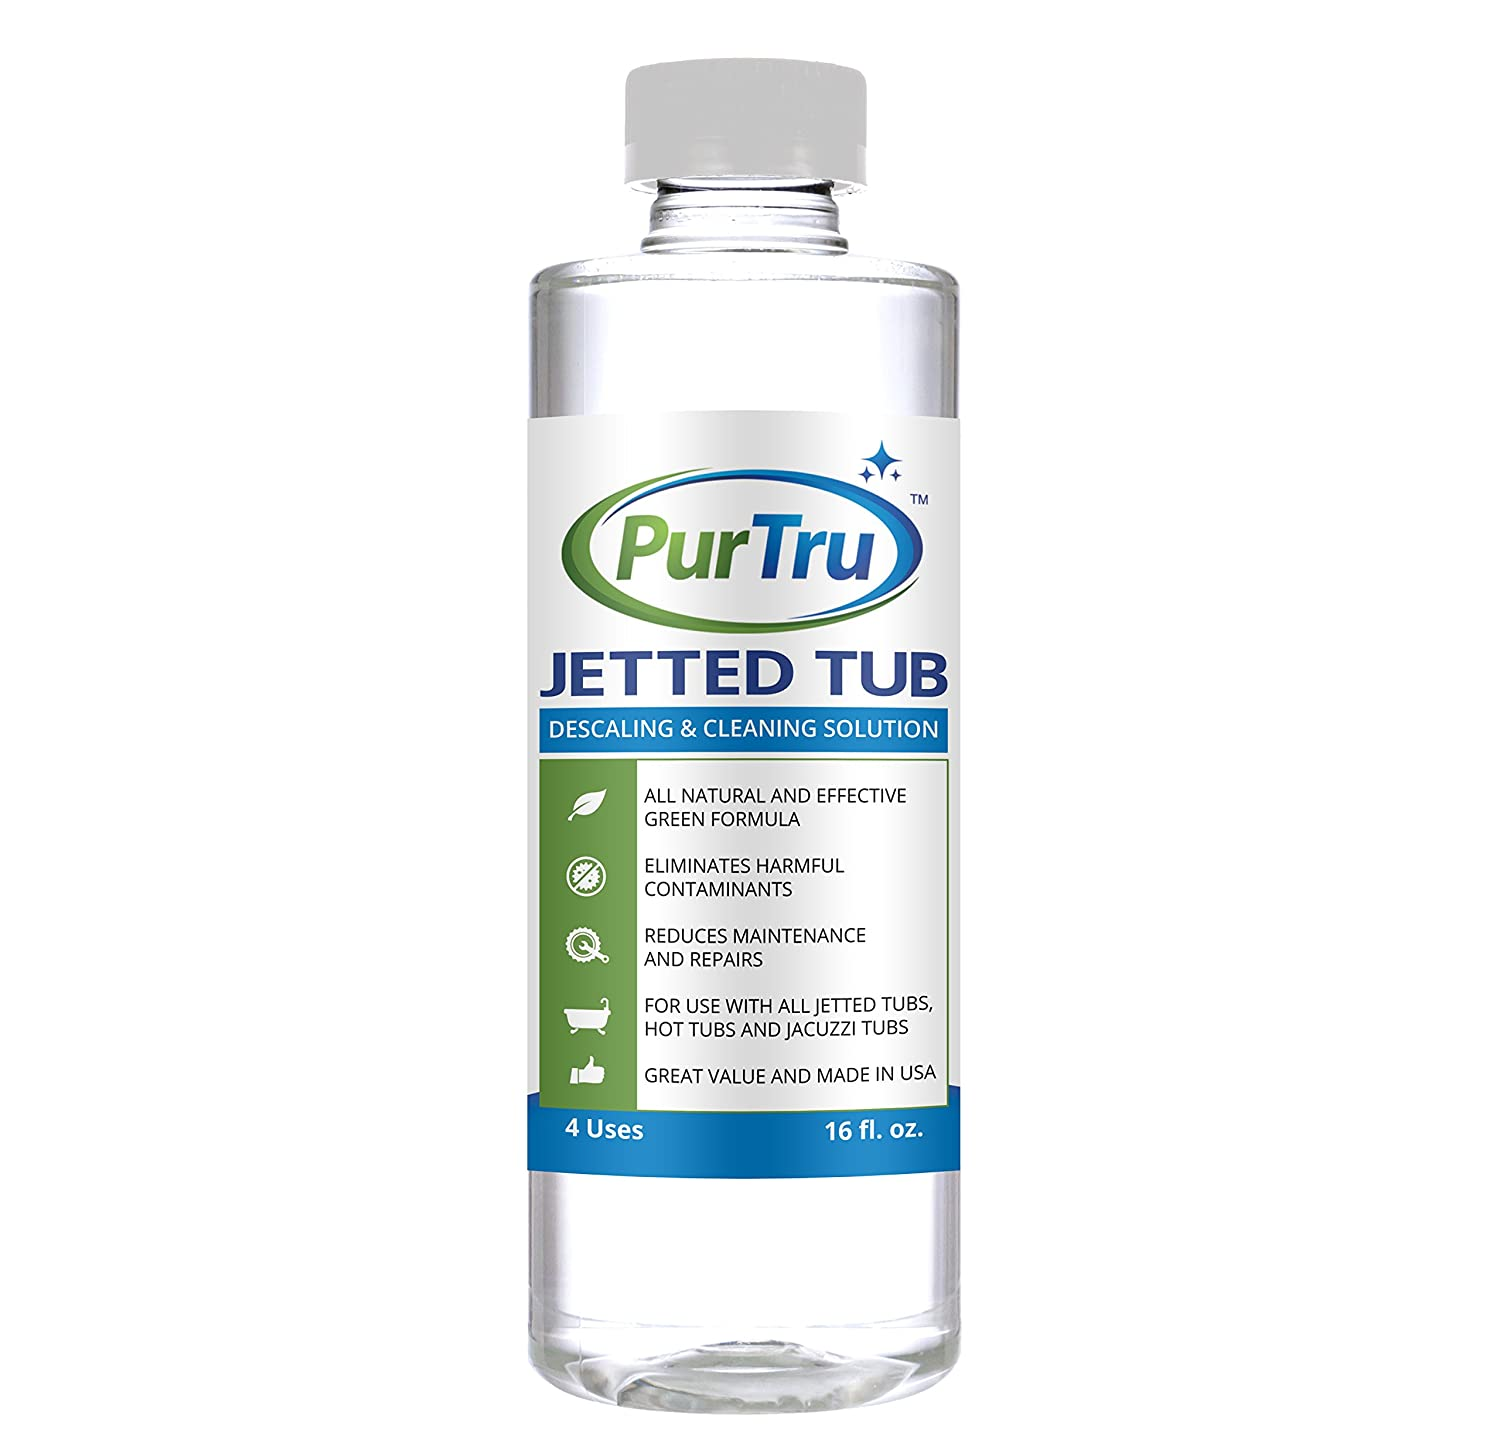 Amazon.com: Jetted Tub and Plumbing System Cleaner - All Natural and ...